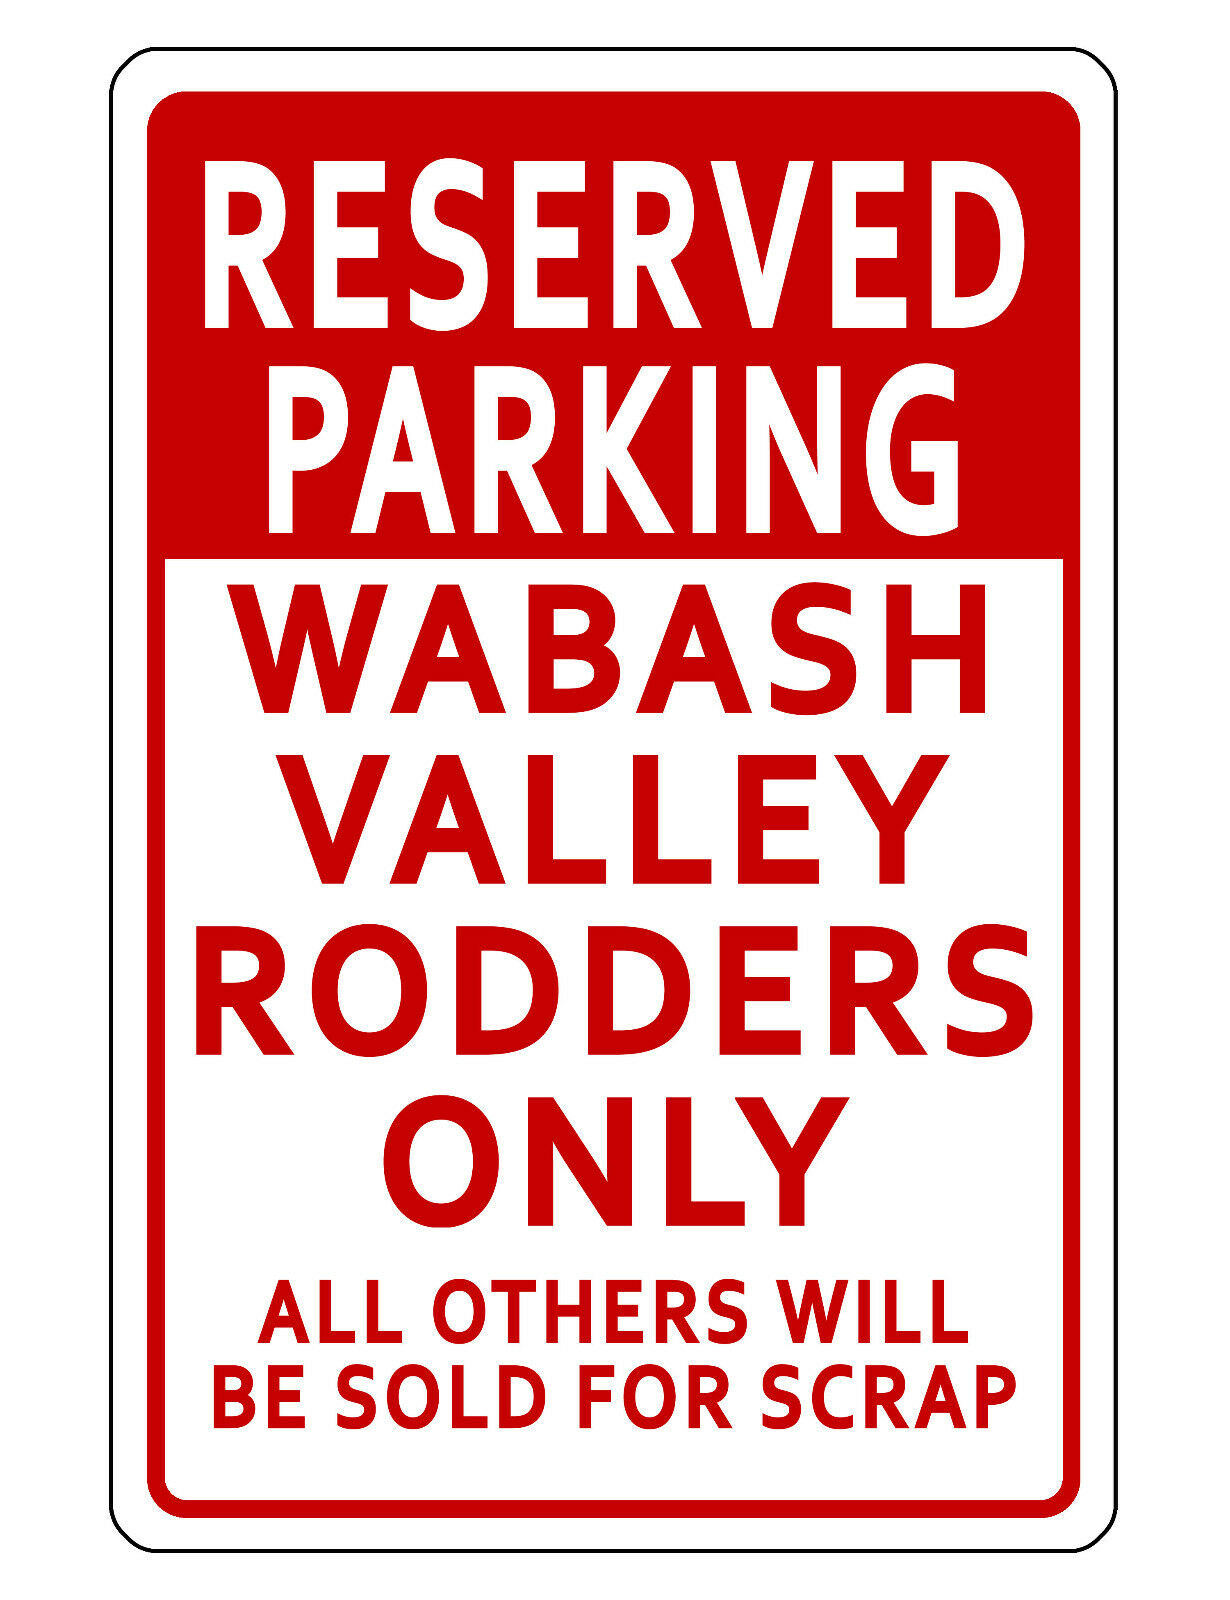 PERSONALISED PARKING SIGN YOUR NUMBER ONLY Metal Reserved Blue Warning Driveway